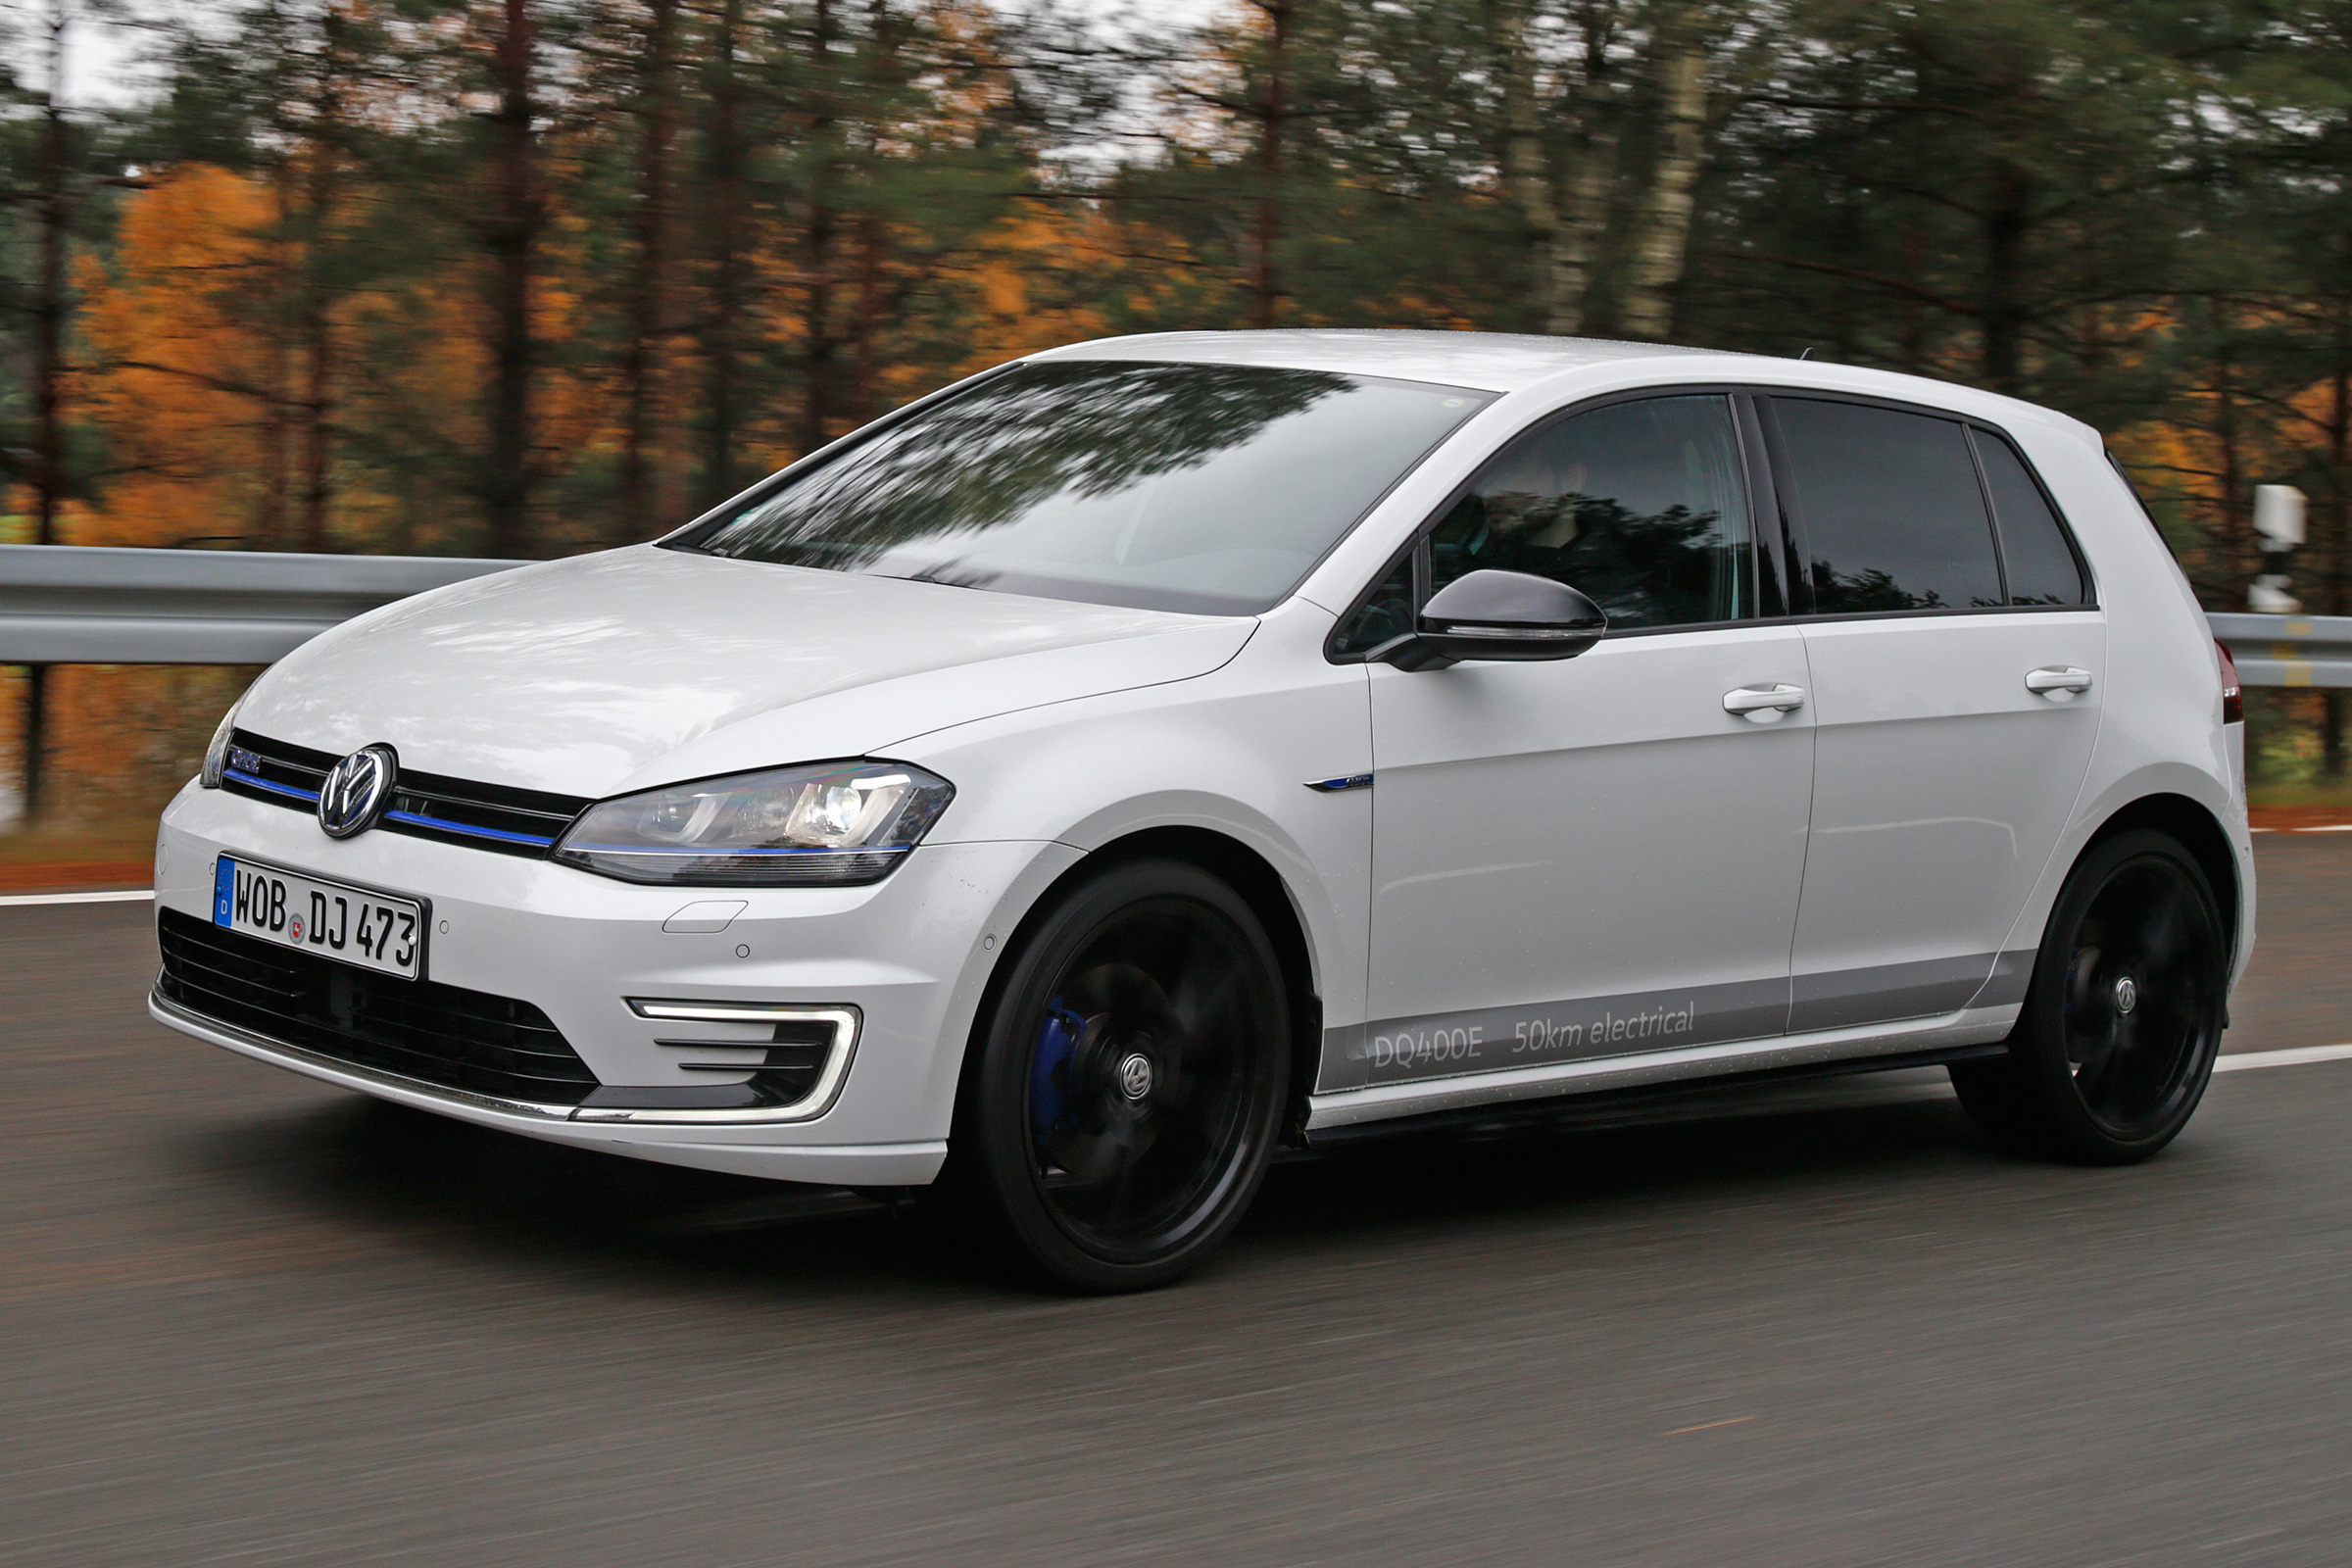 Volkswagen Golf Gte Performance Hybrid Prototype Review Auto Express